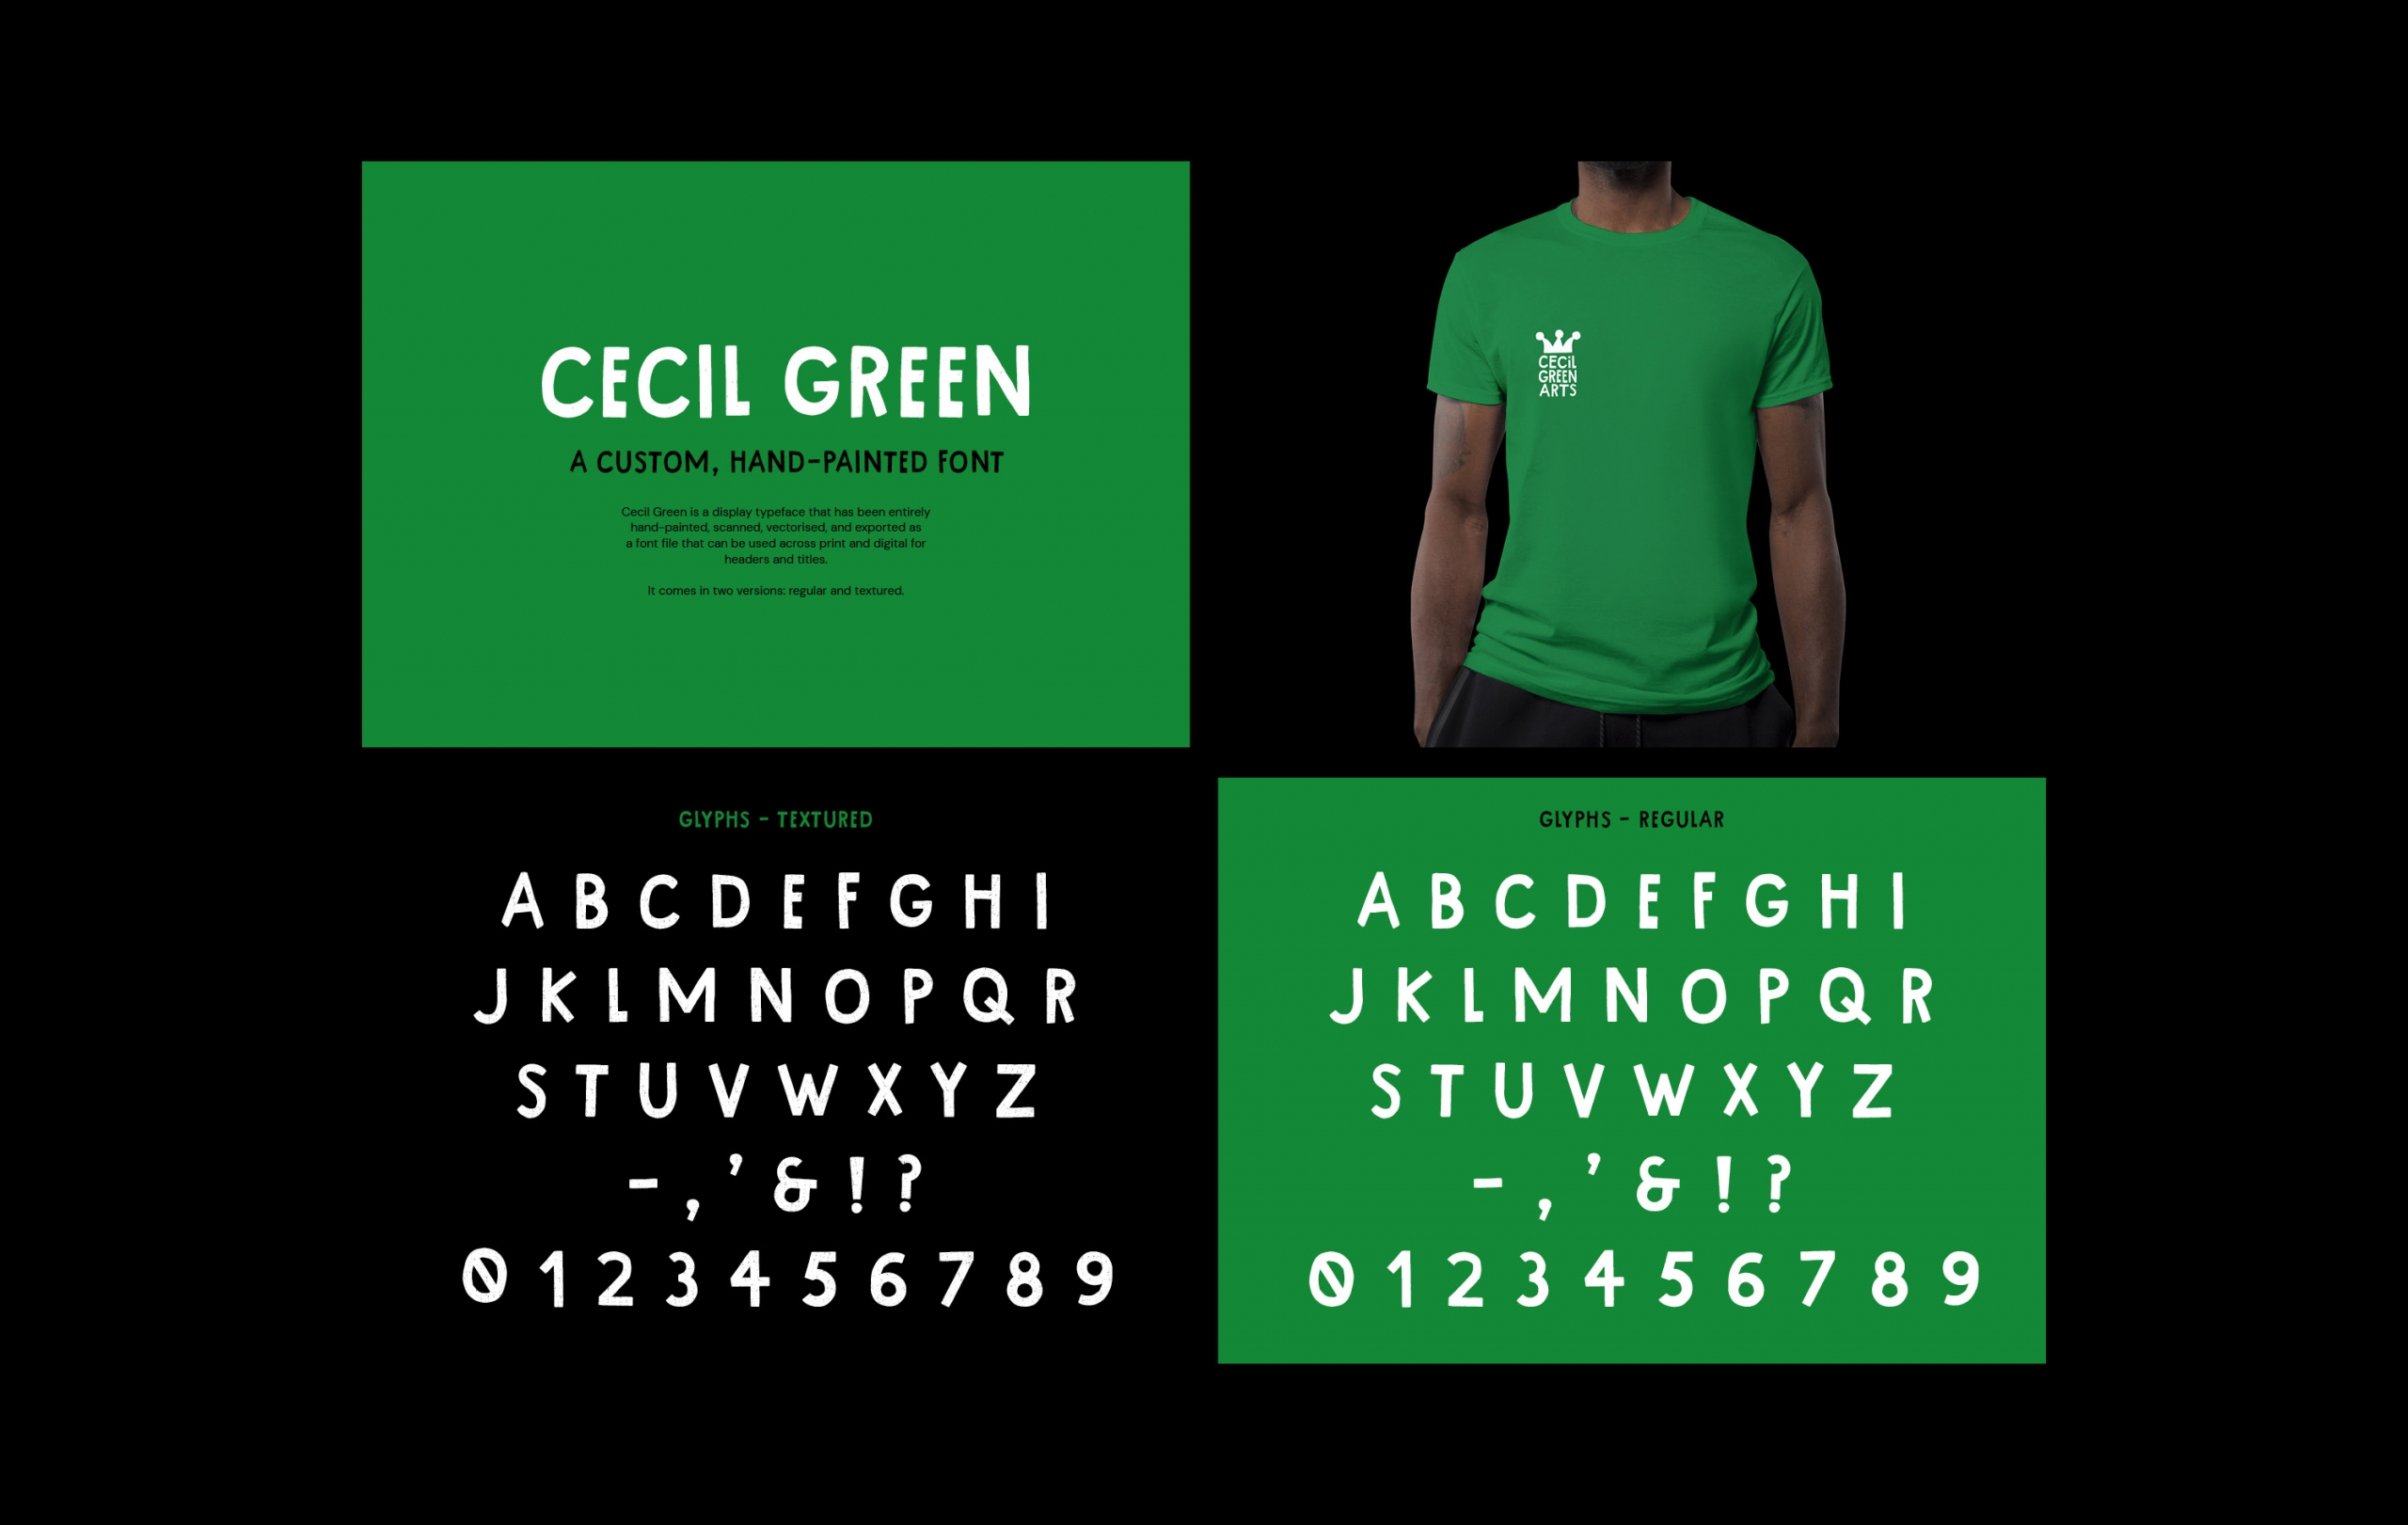 Cecil Green Arts Bespoke Typeface Design